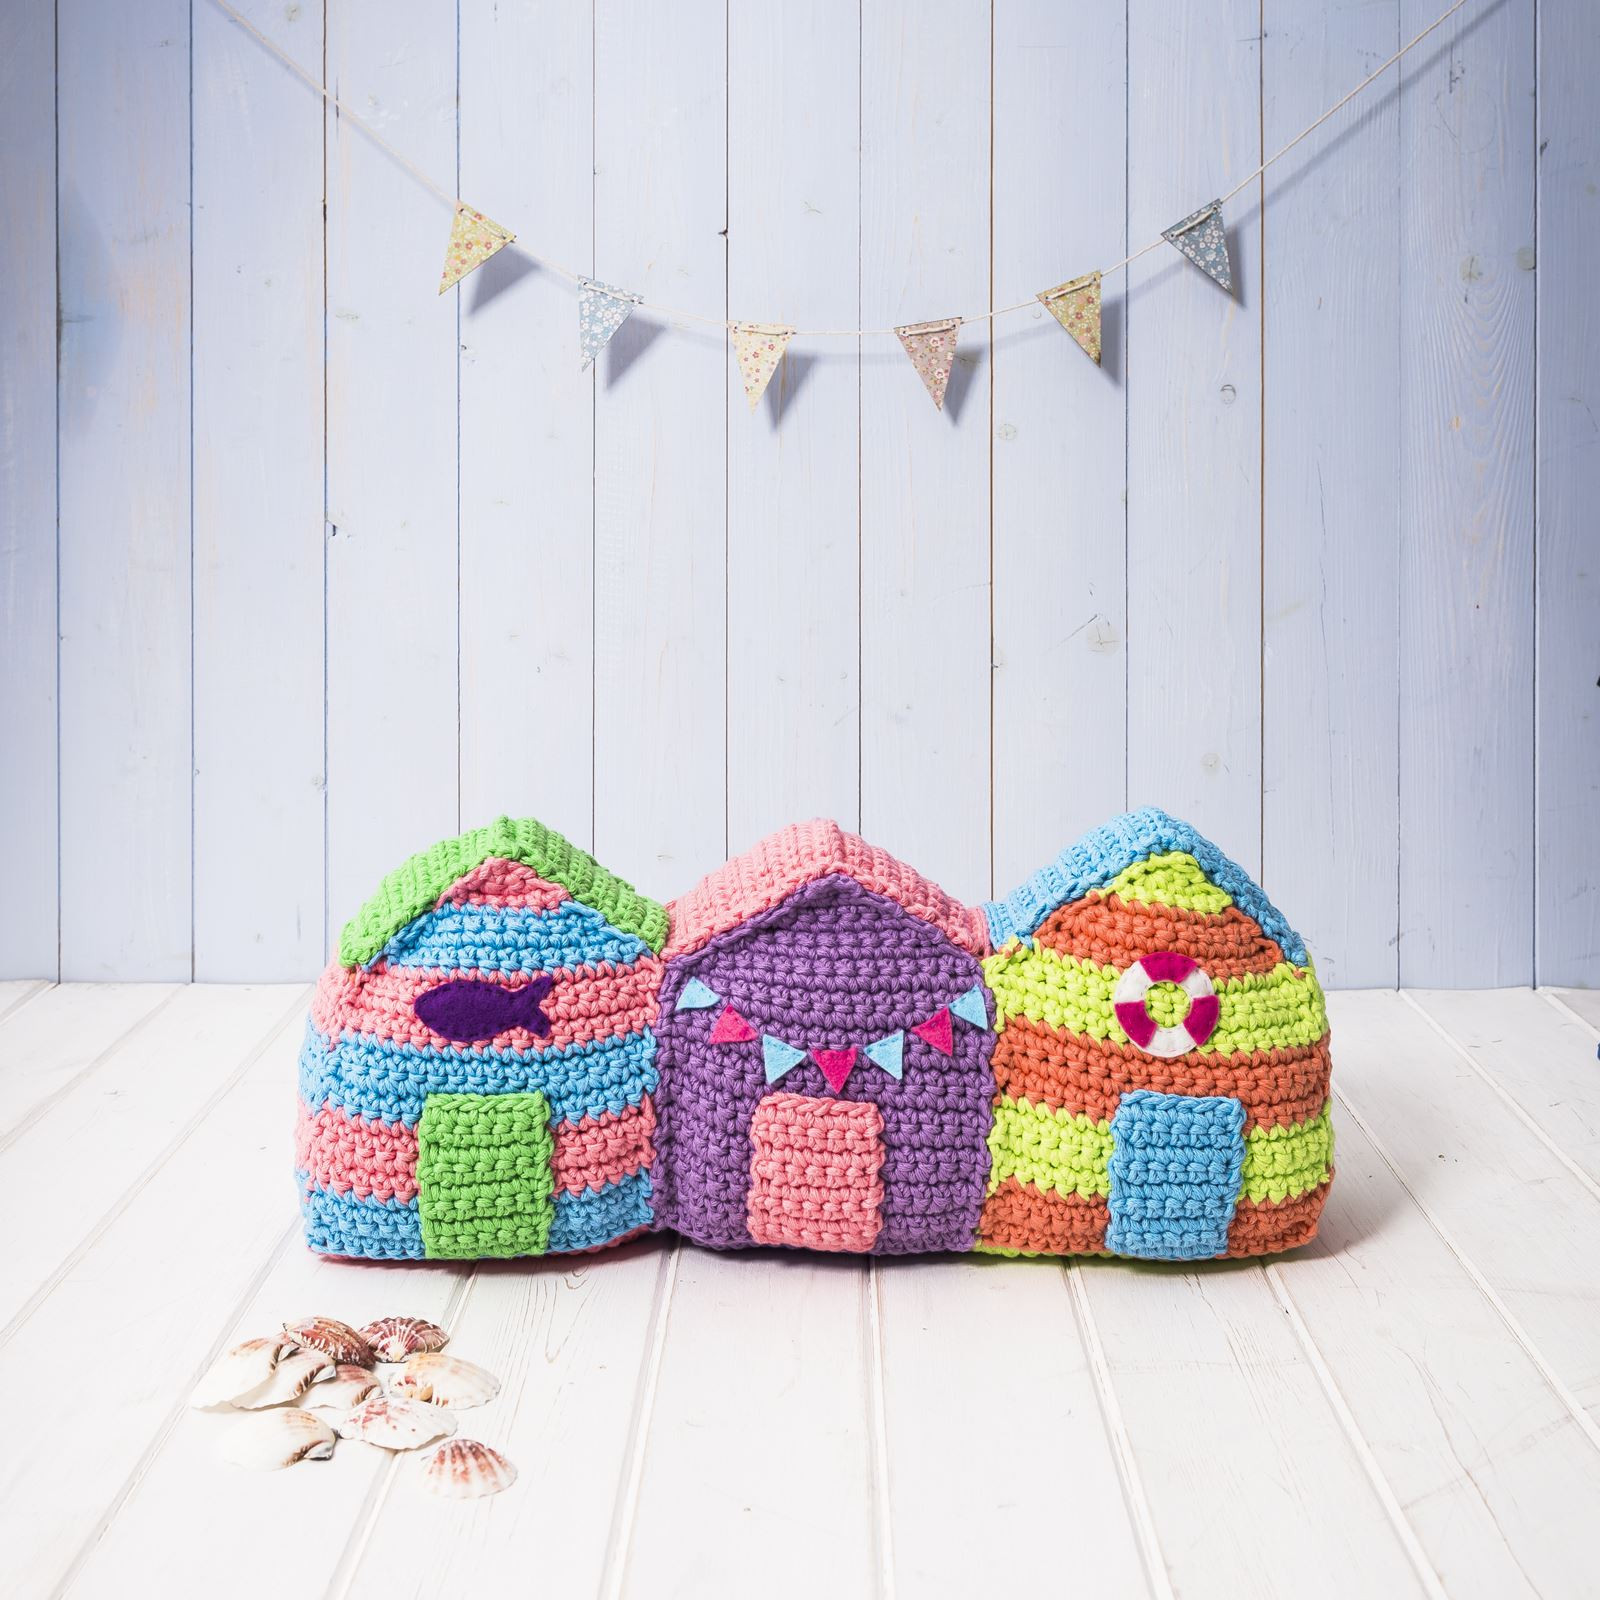 Crochet Home Decor Best Of Dmc Natura Xl Yummy Crochet Patterns Amigurumi Home Decor Of Amazing 43 Pics Crochet Home Decor